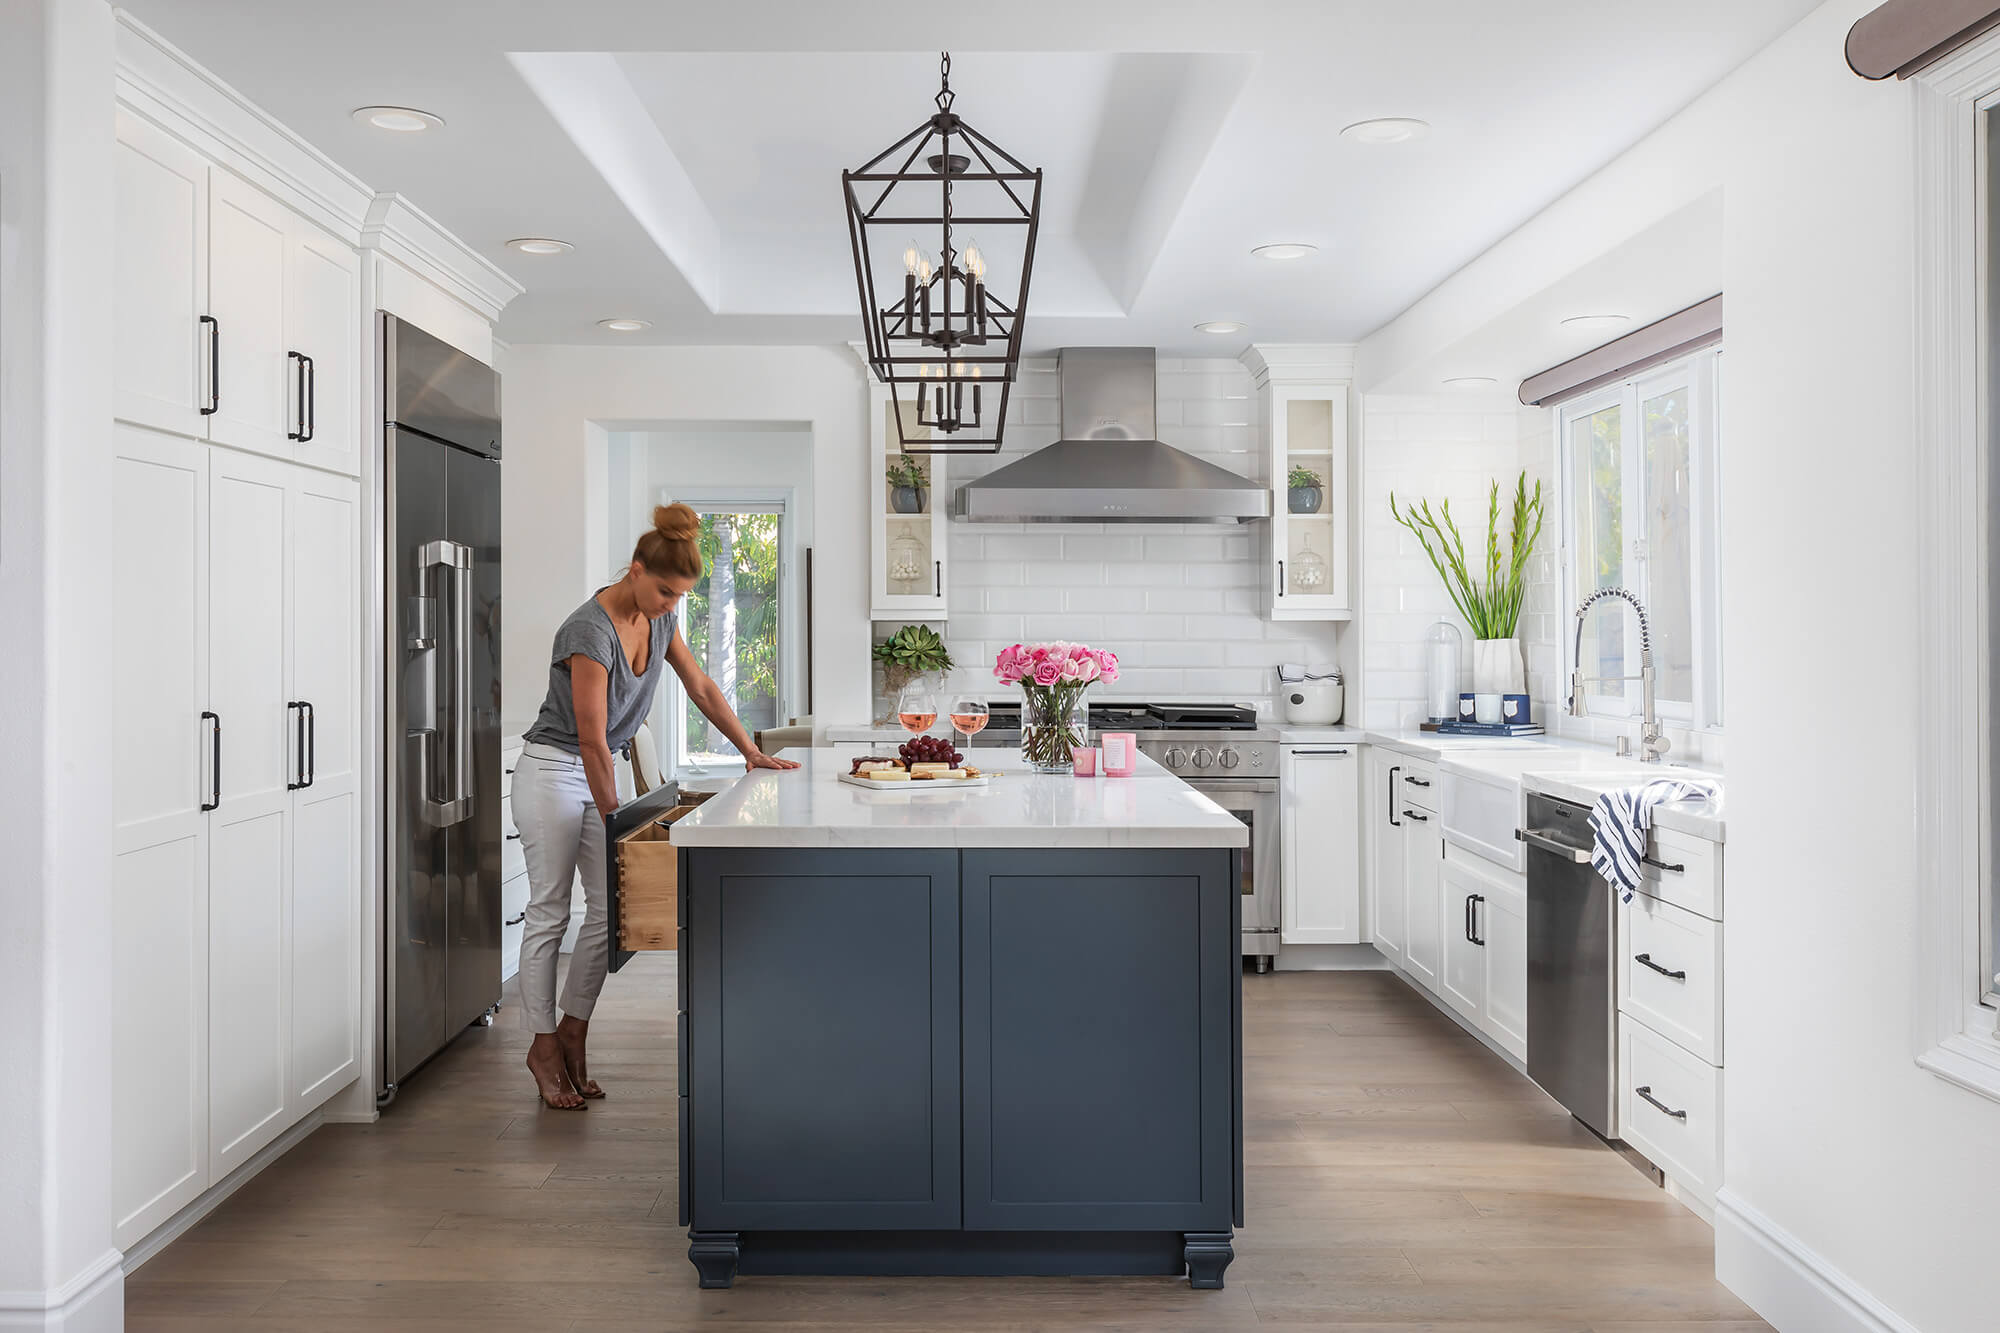 cabinets-drawers-in-island